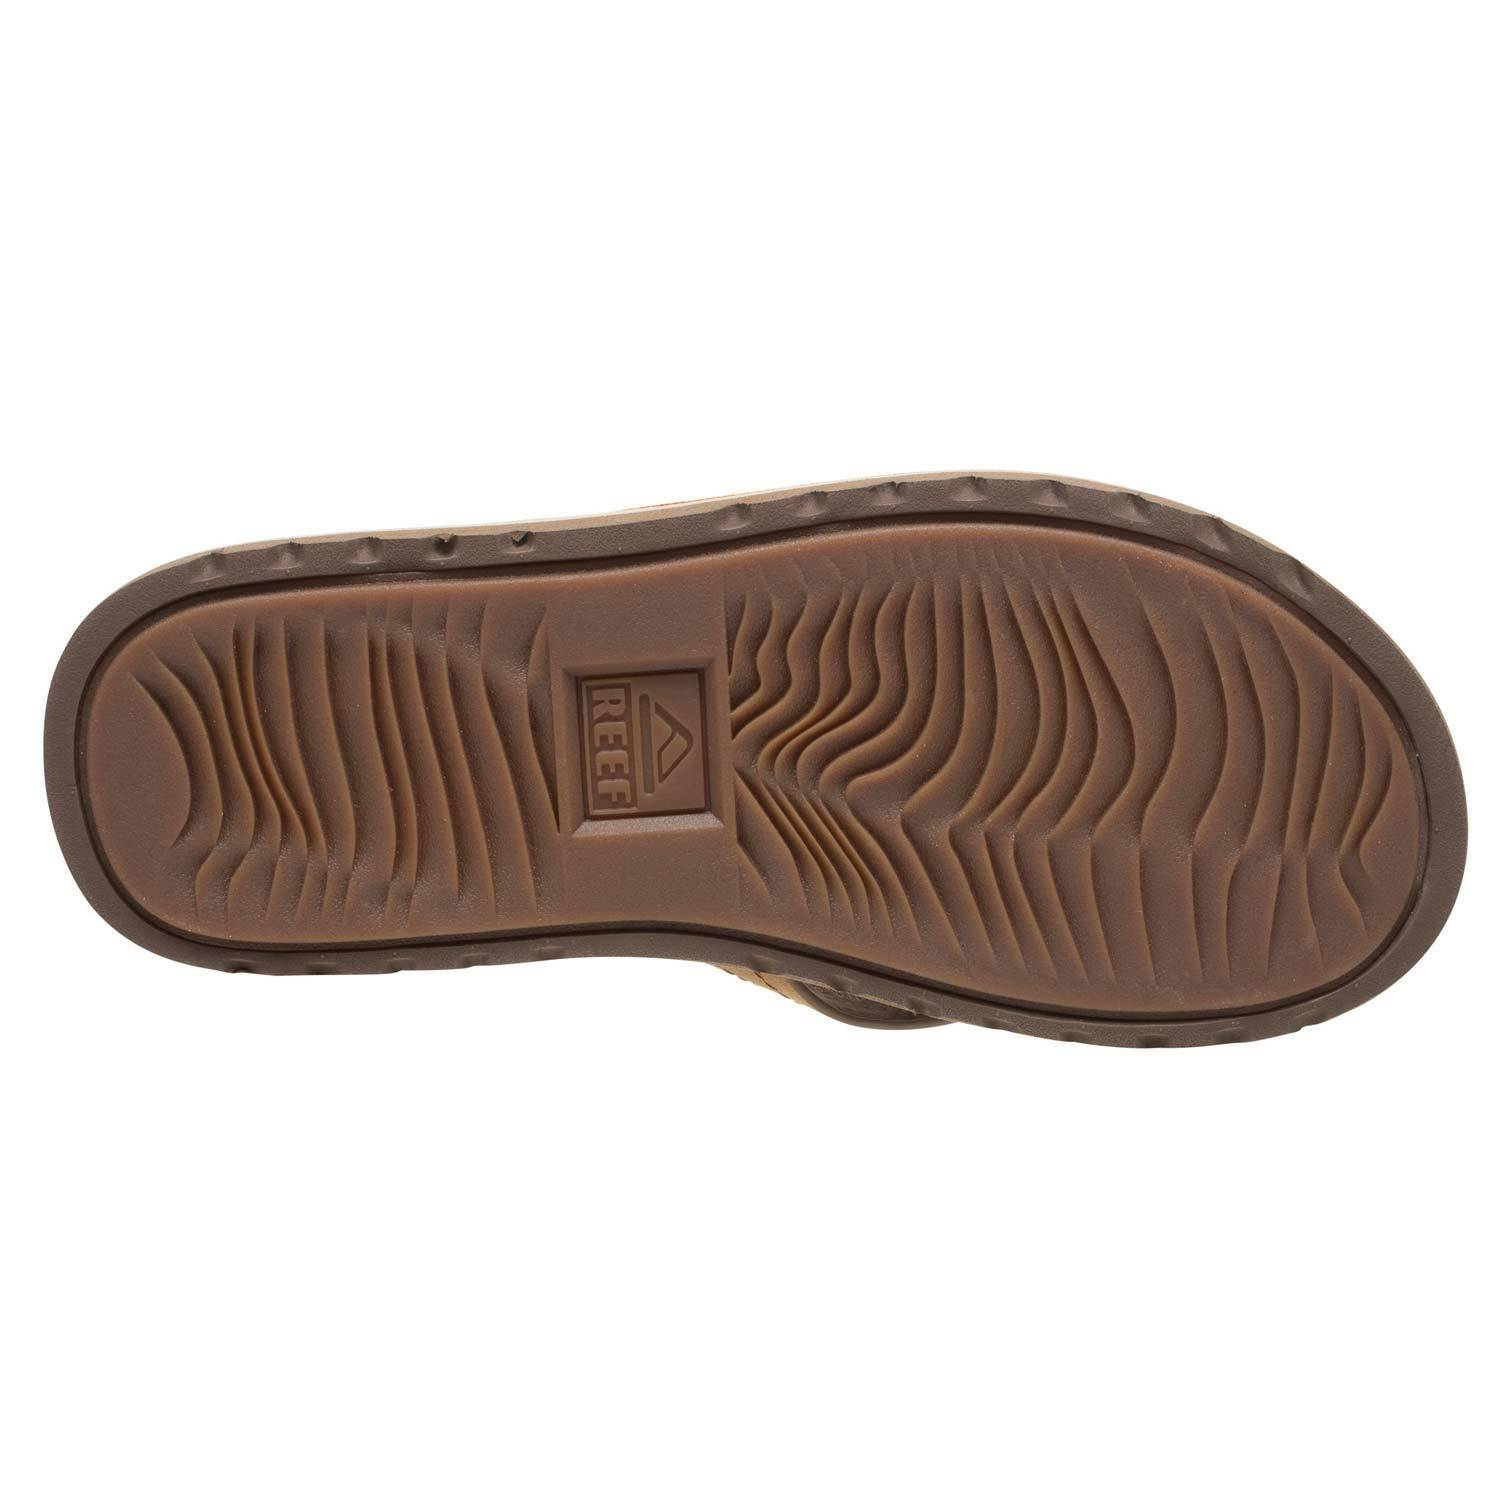 0968a2de10d608 REEF Men s Voyage Flip-Flop Sandals